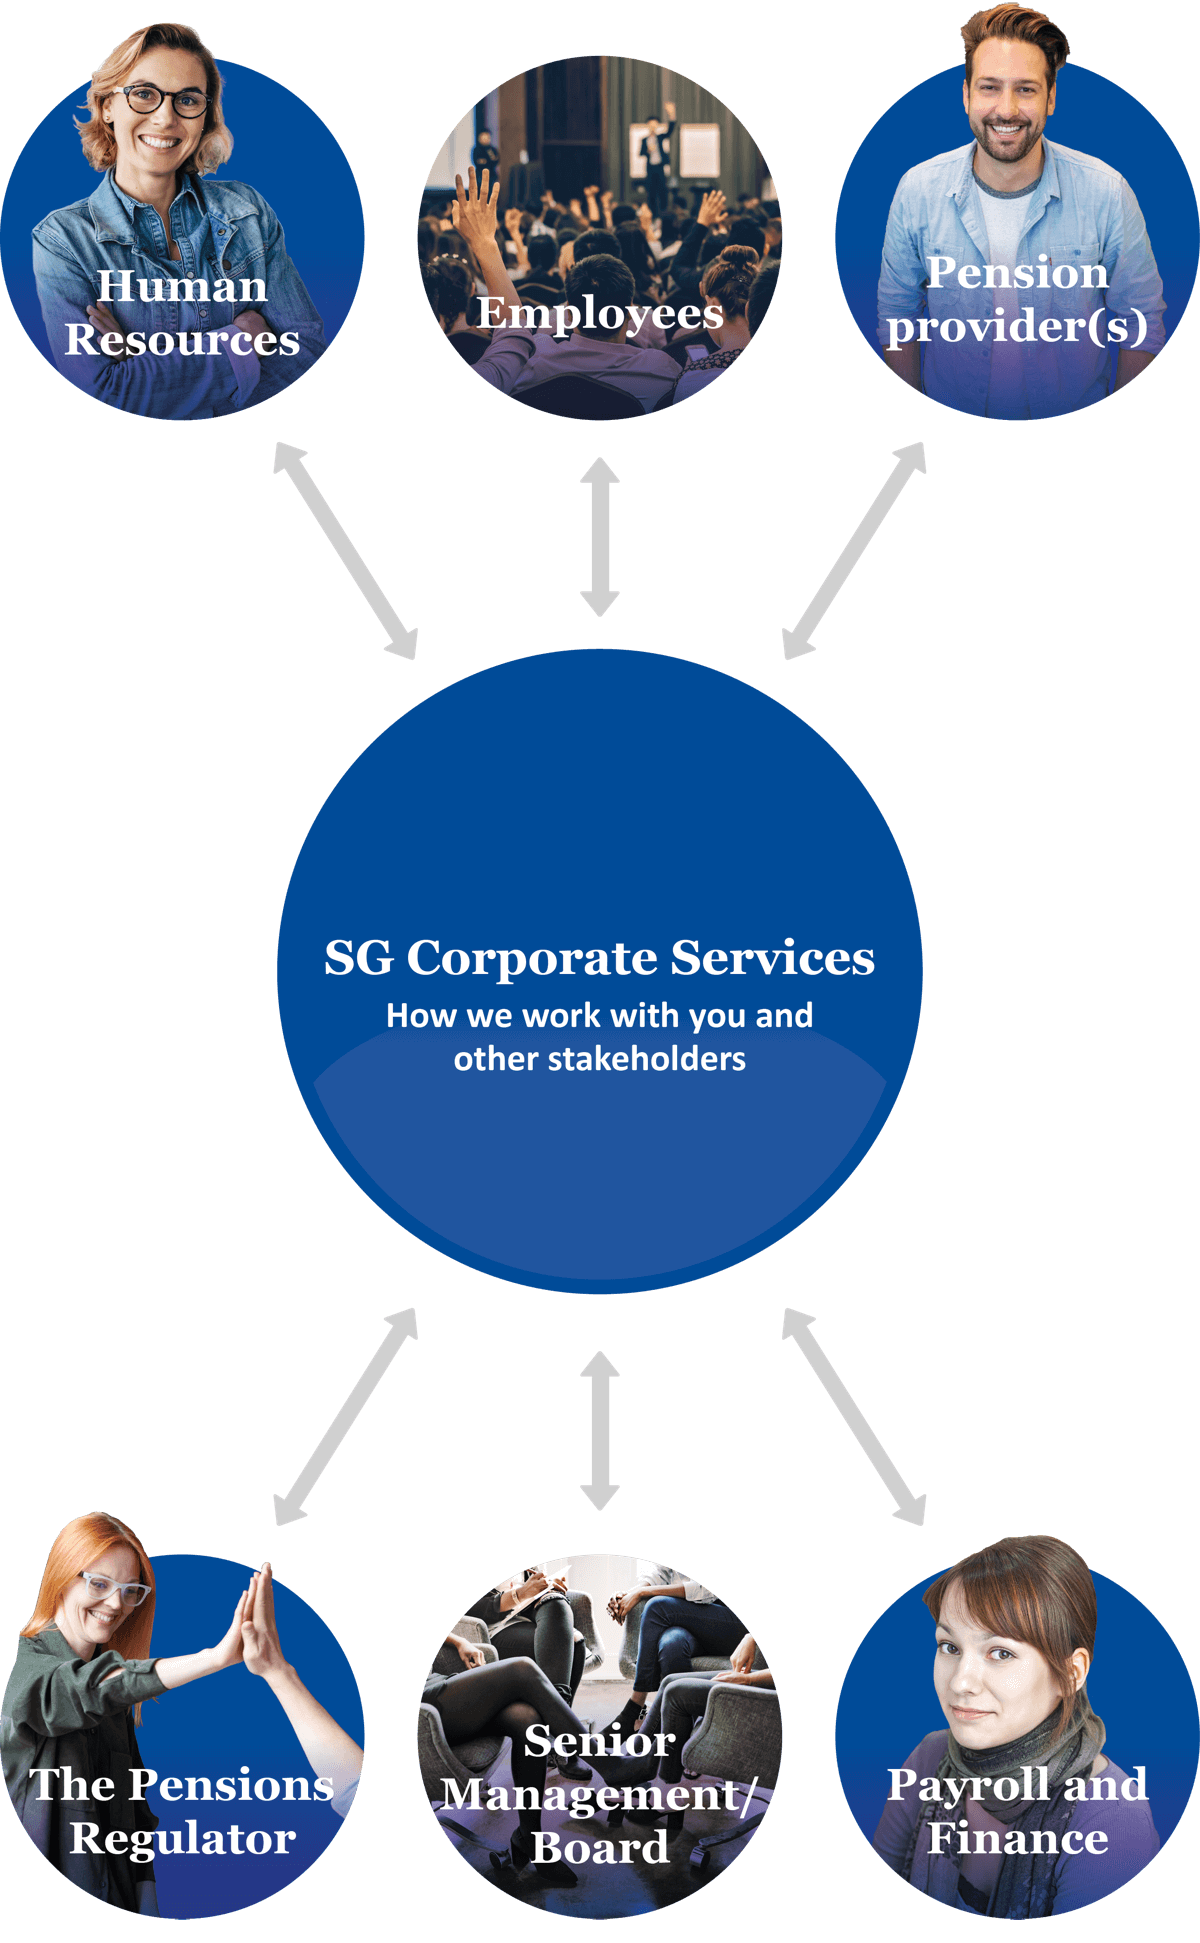 SG Corporate Services - How we work with you